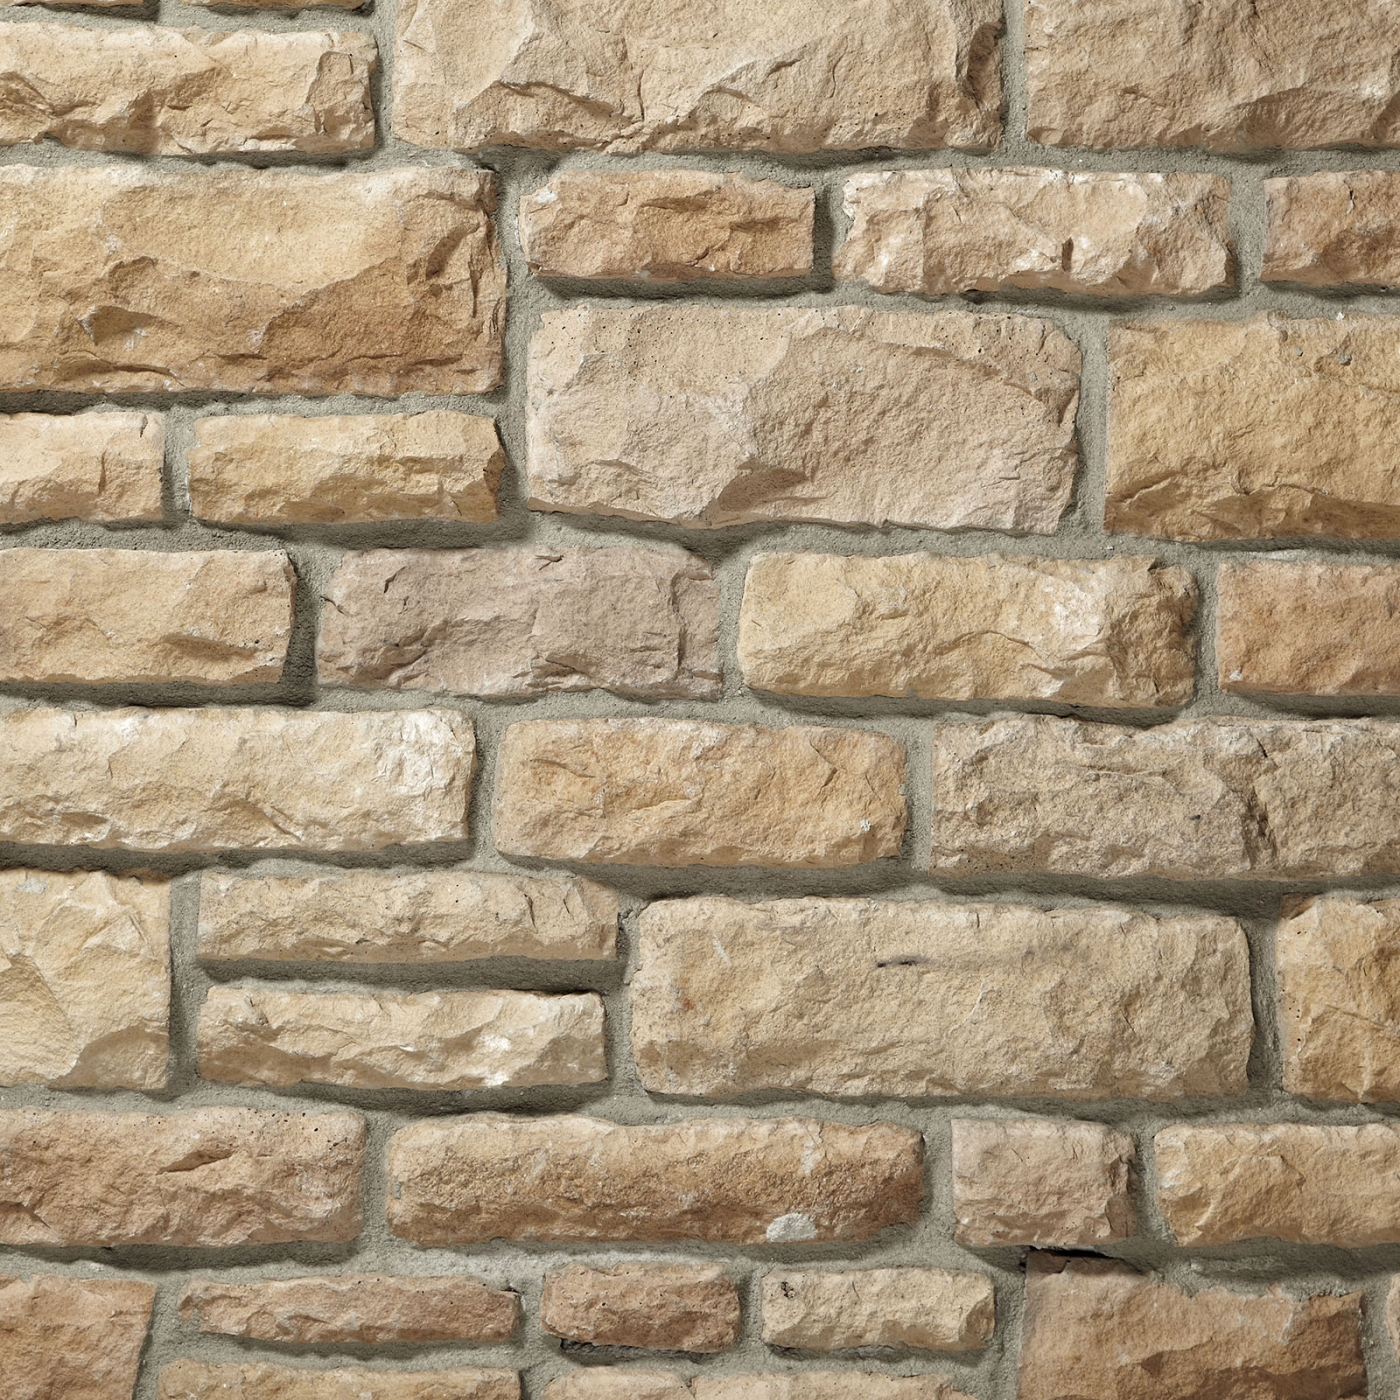 Buff Cut Limestone Stone Veneer from Environmental StoneWorks